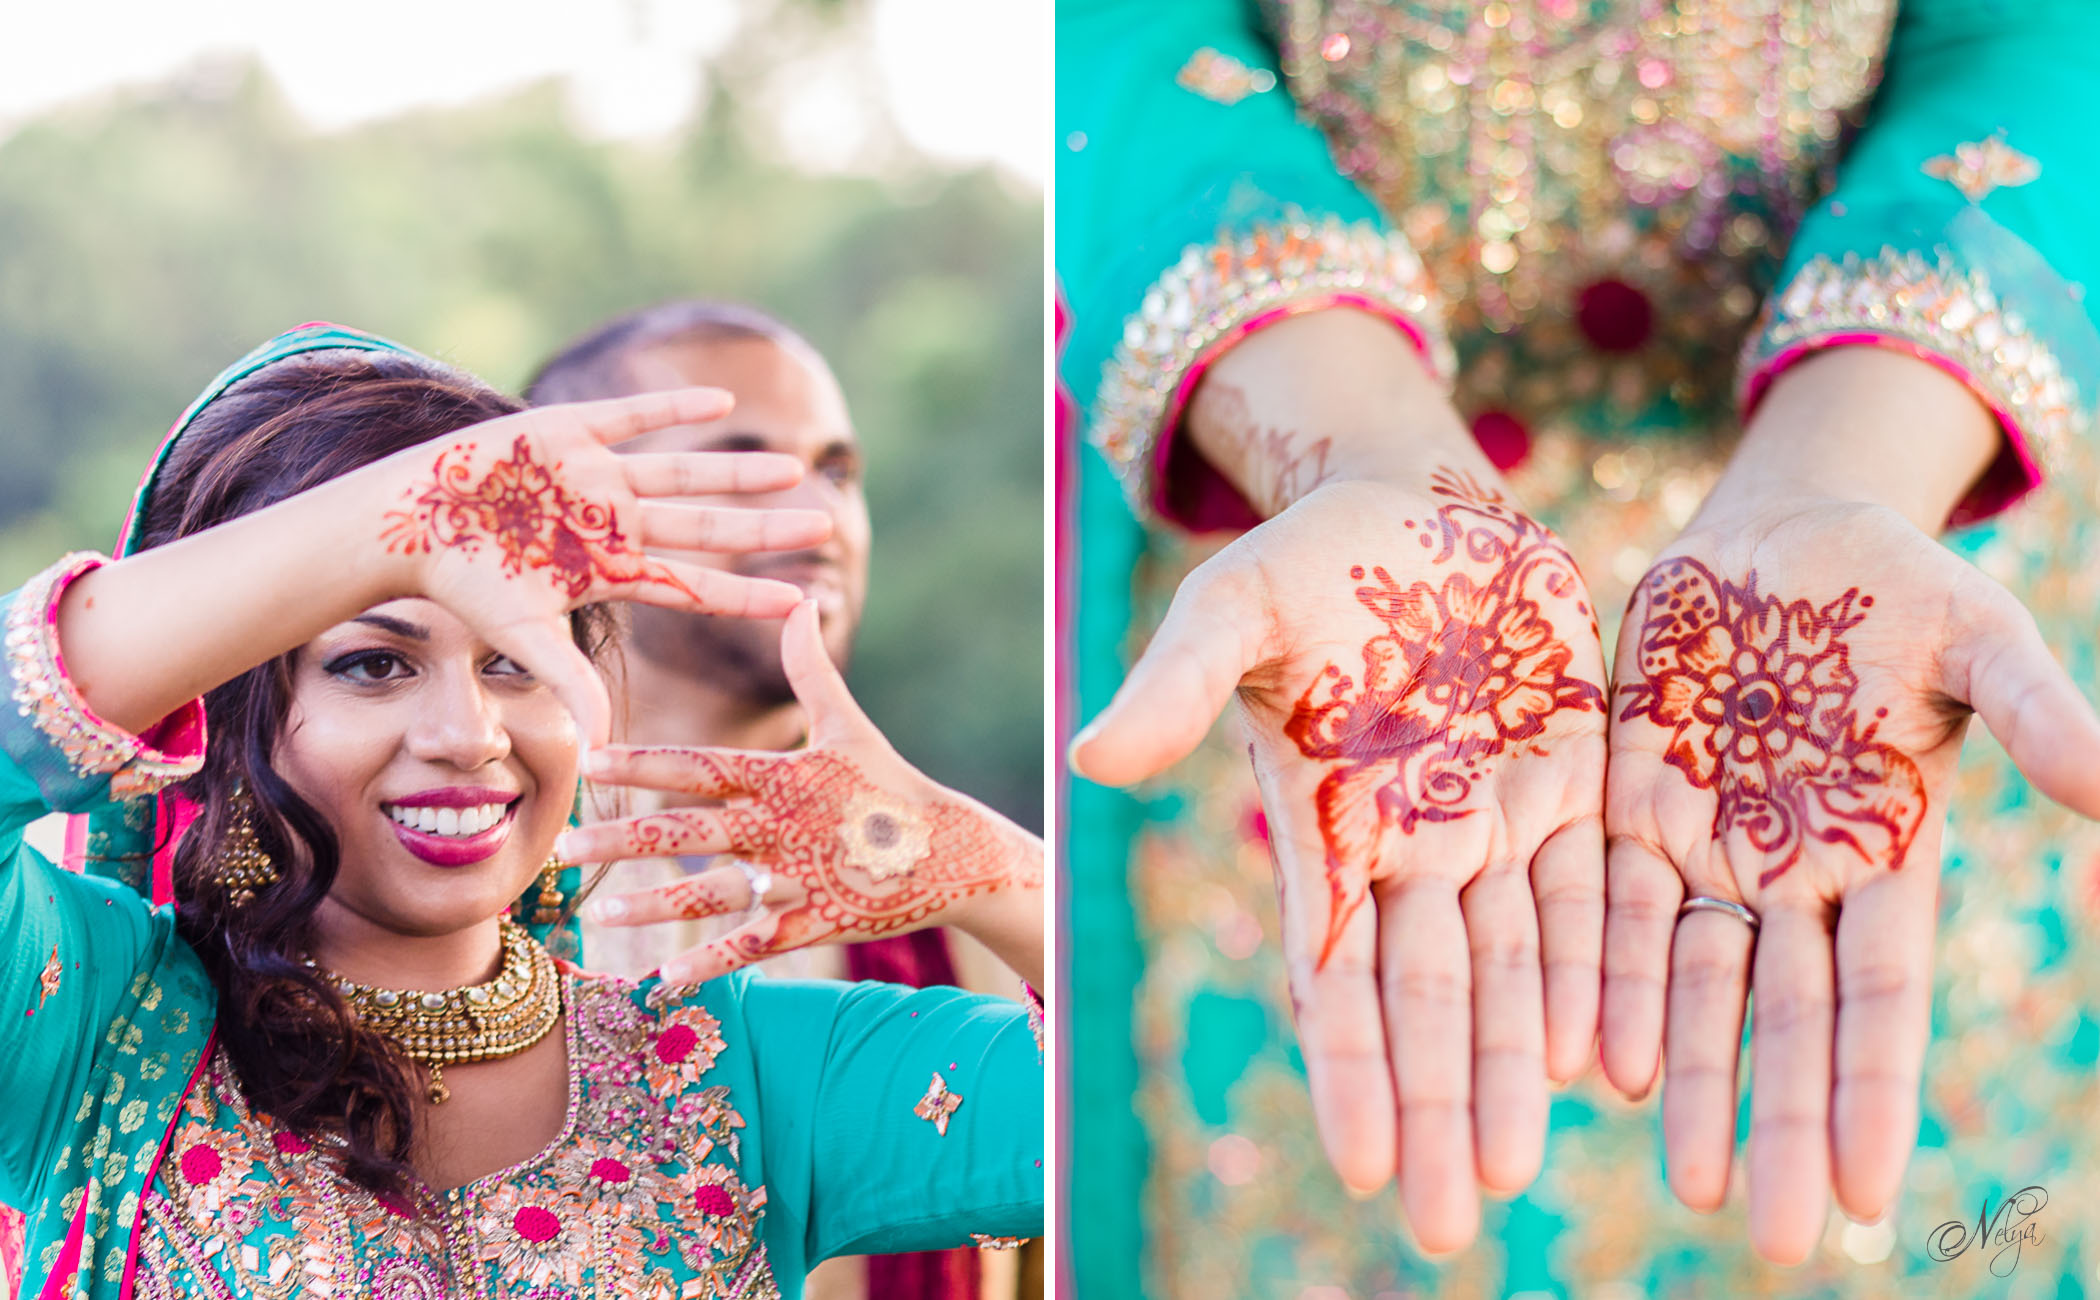 Indin wedding traditions - henna